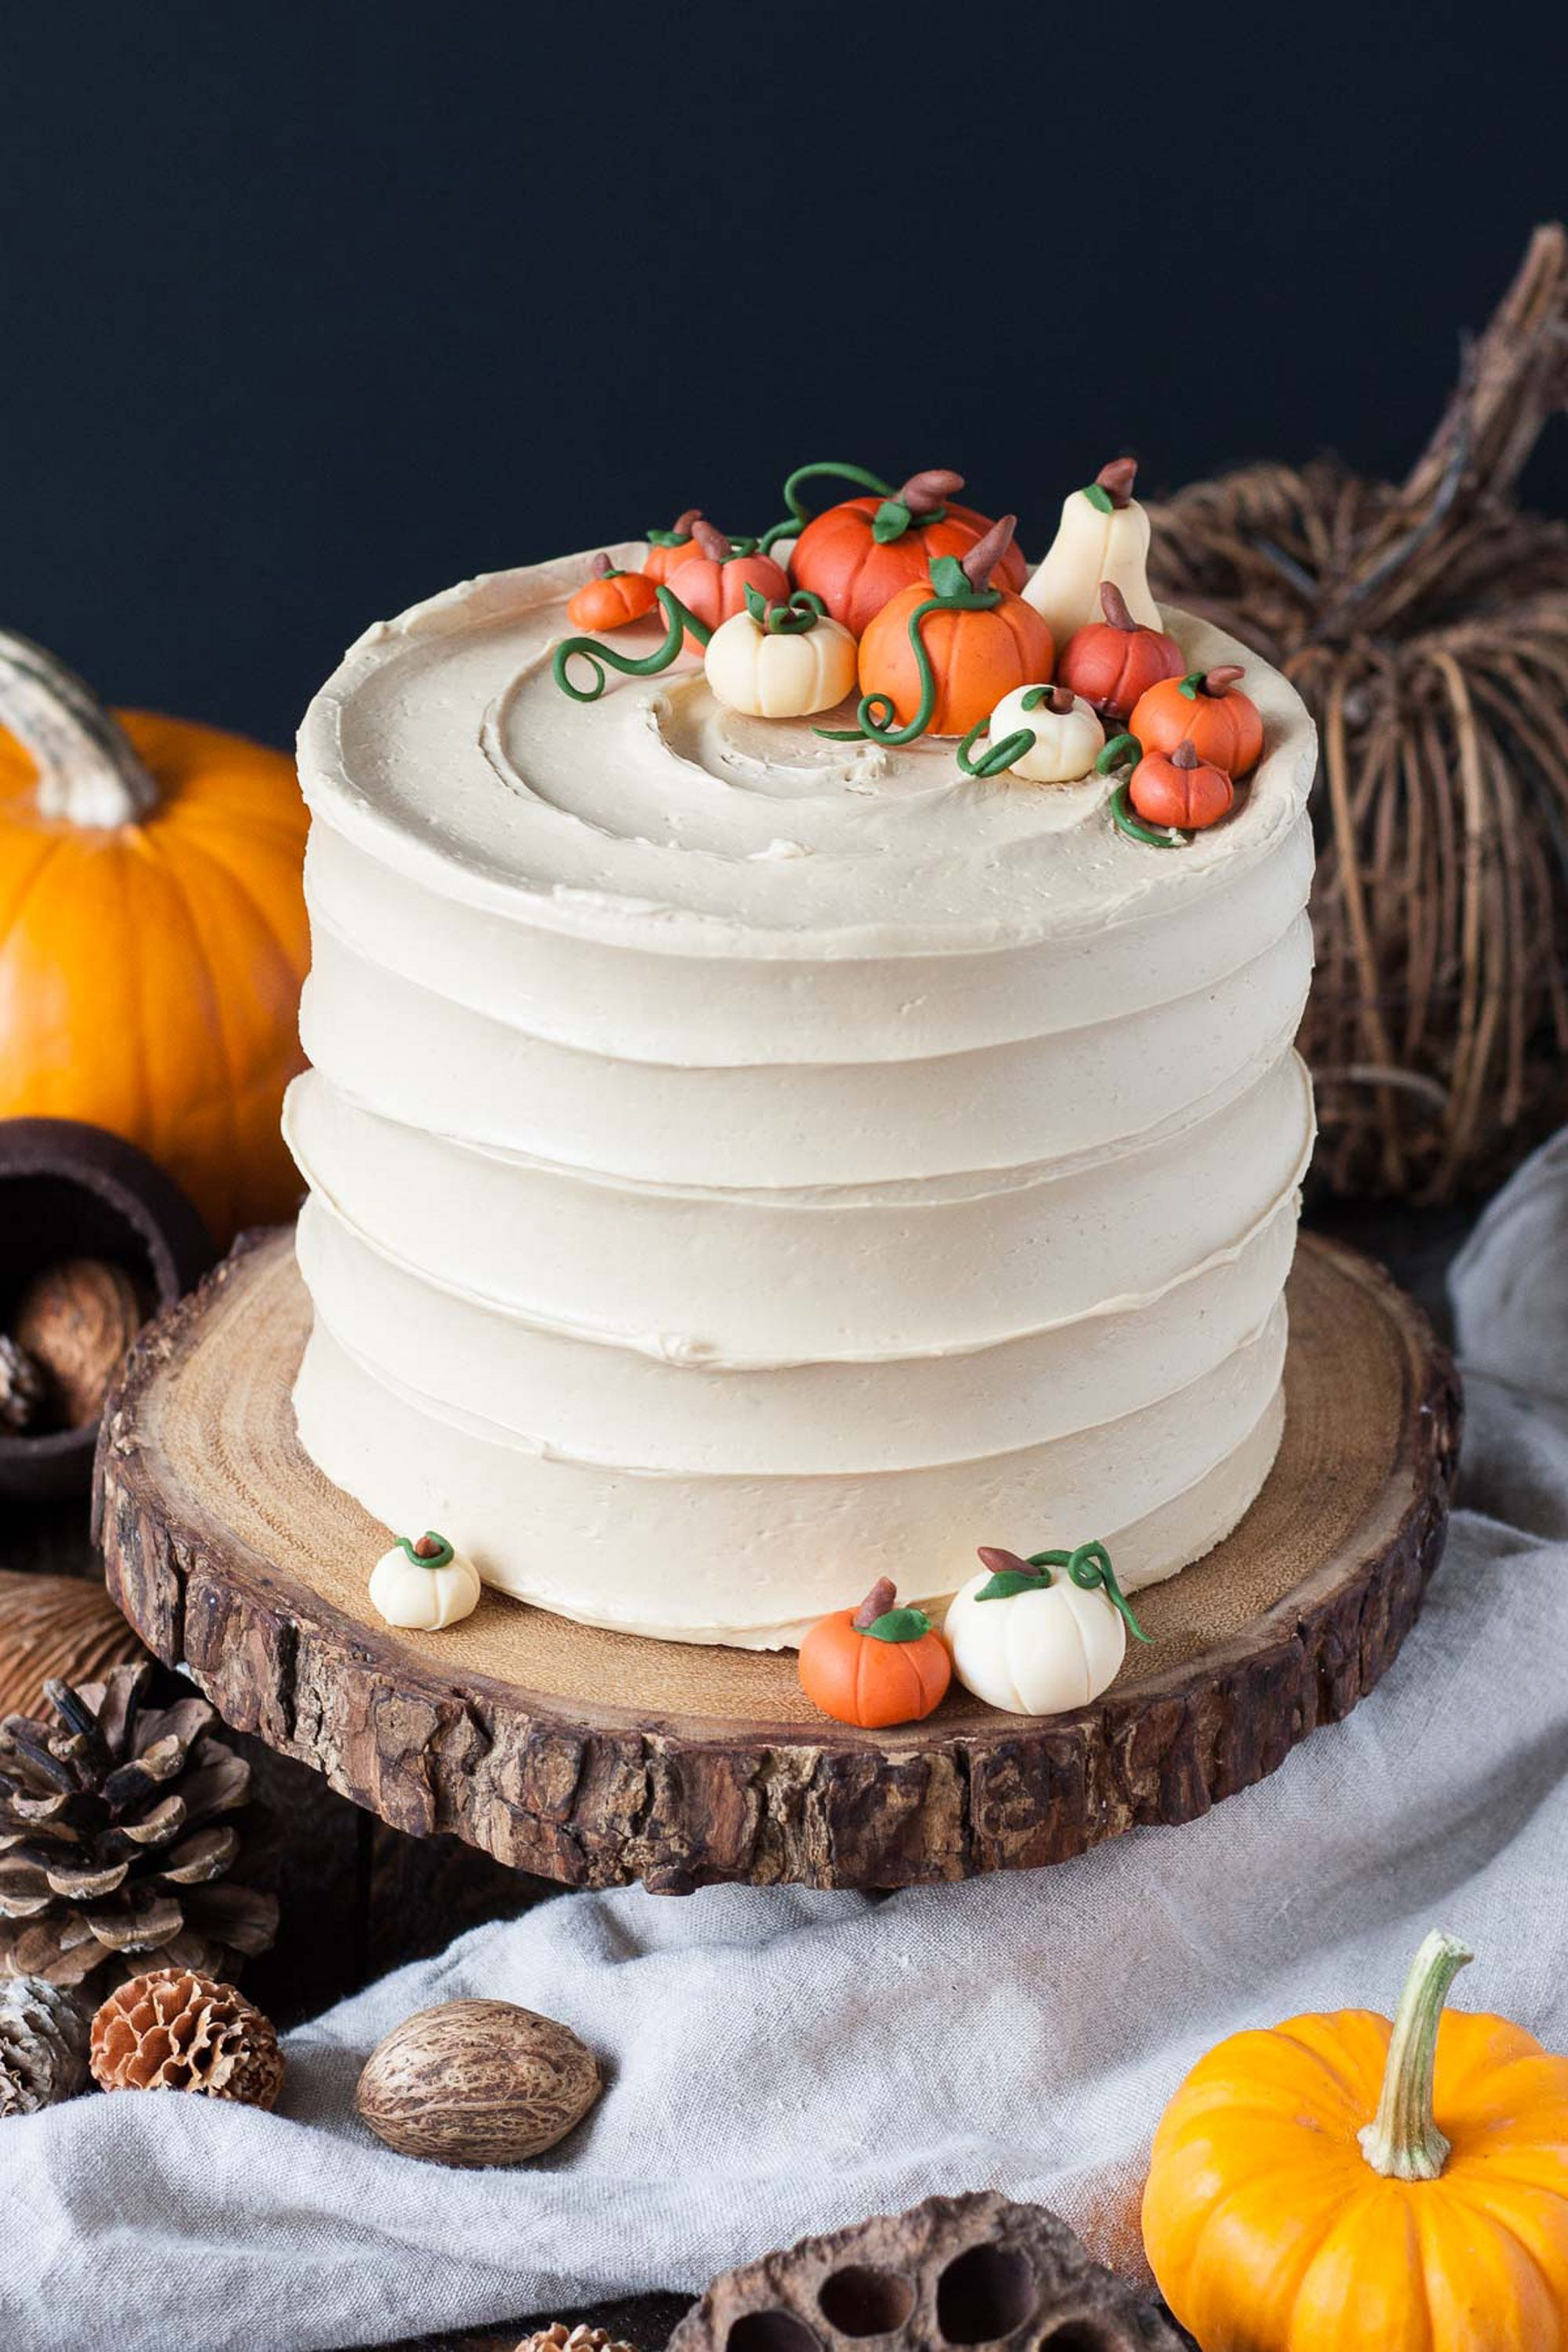 20 Thanksgiving Cake Ideas   Holiday Cake Decorating Ideas for     thanksgiving cakes pumpkin spice